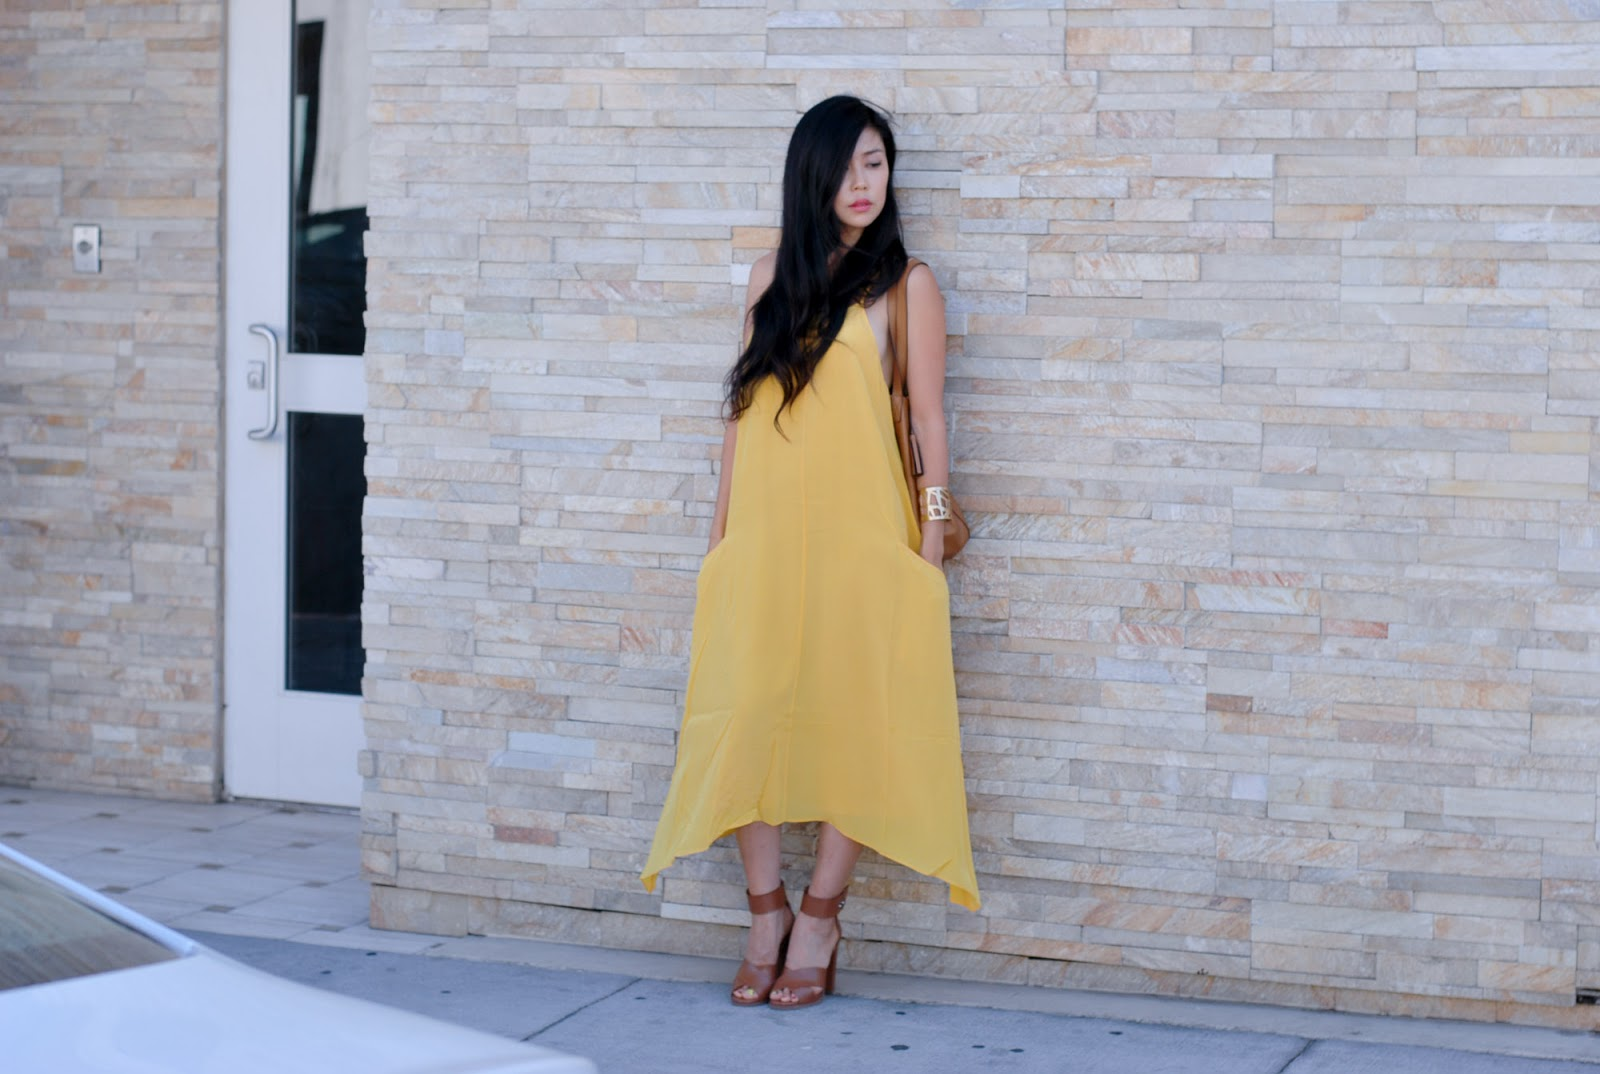 LA fashion lawyer style beauty blogger Jenny Wu